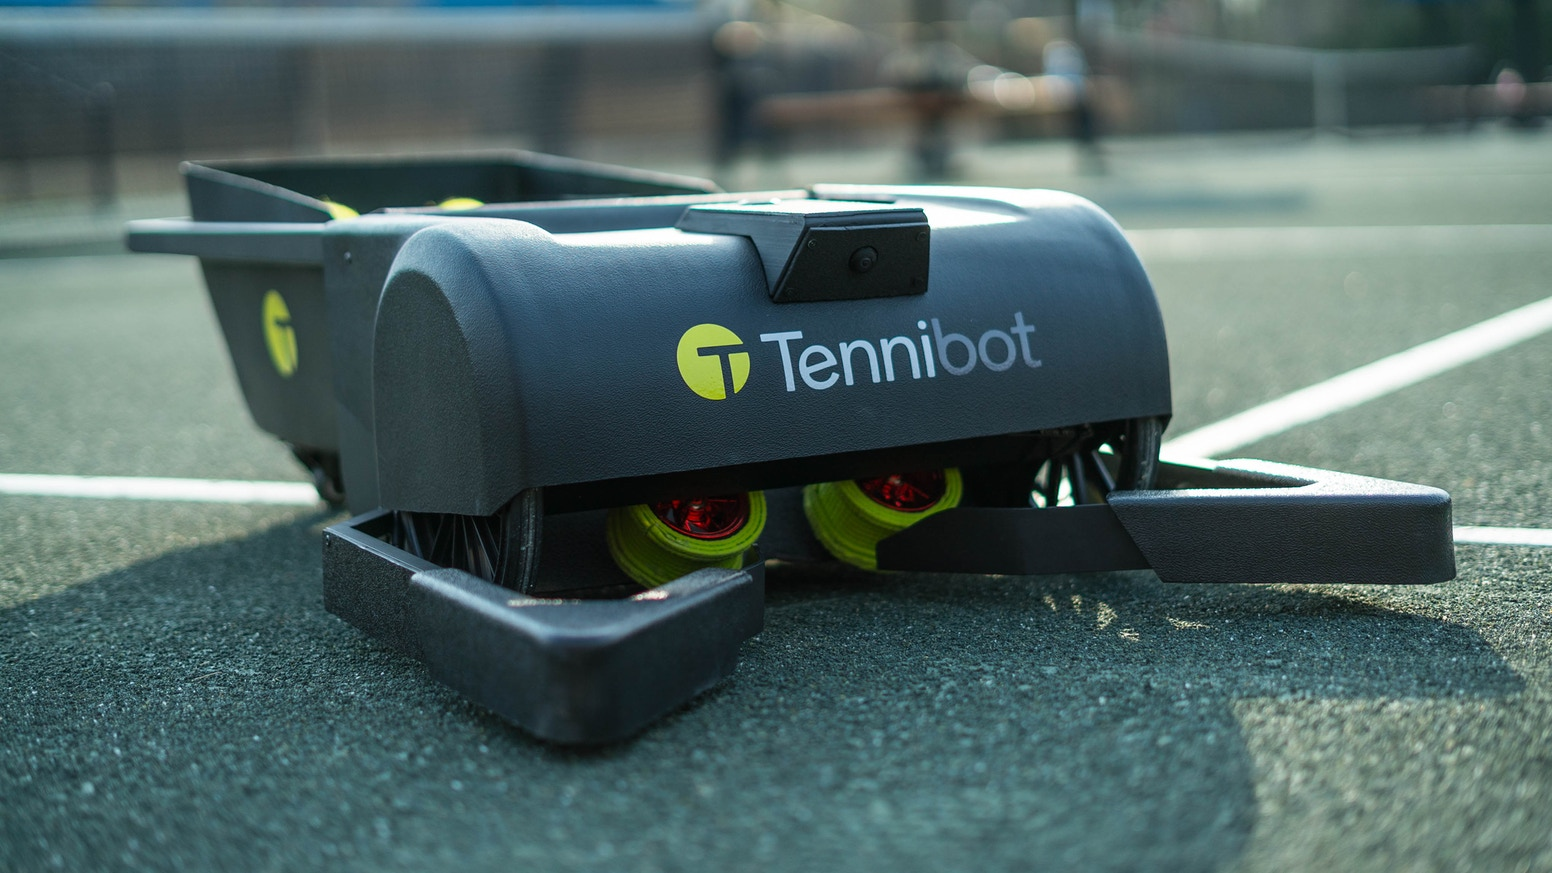 Autonomous & intelligent robot saves players and coaches time by eliminating the tedious task of collecting tennis balls!